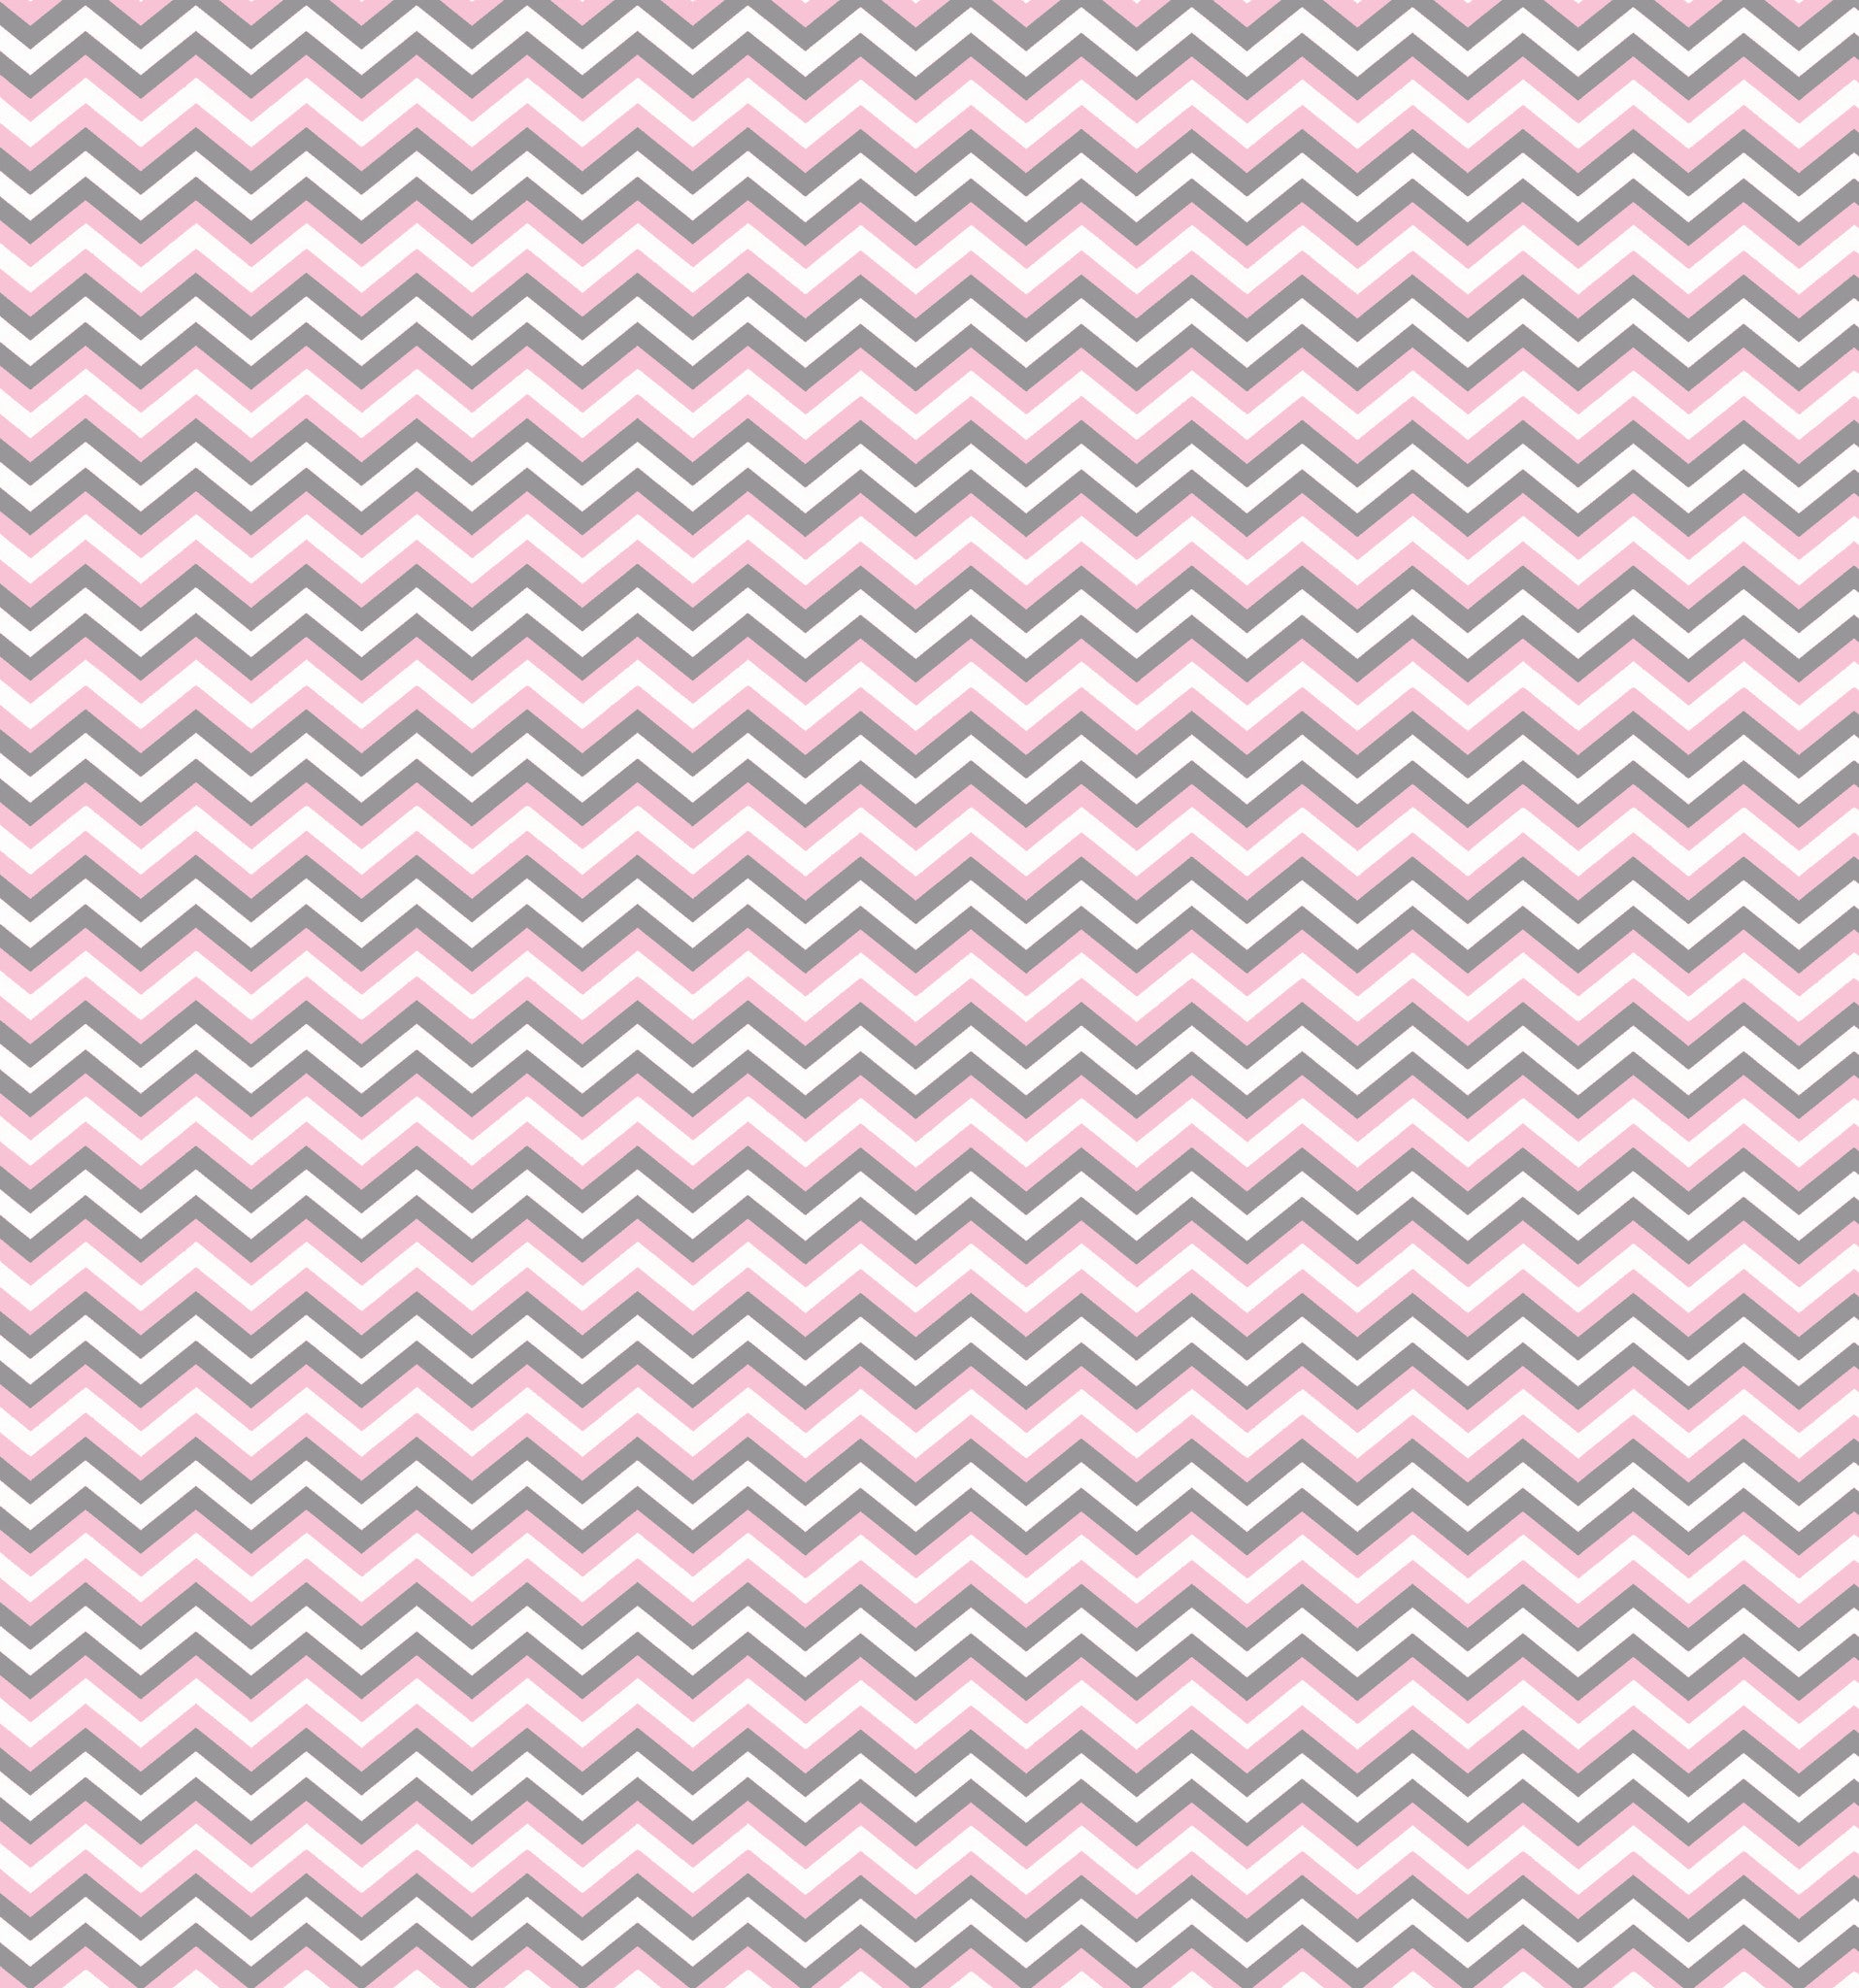 Cotton Flannel Print Chevron Pink